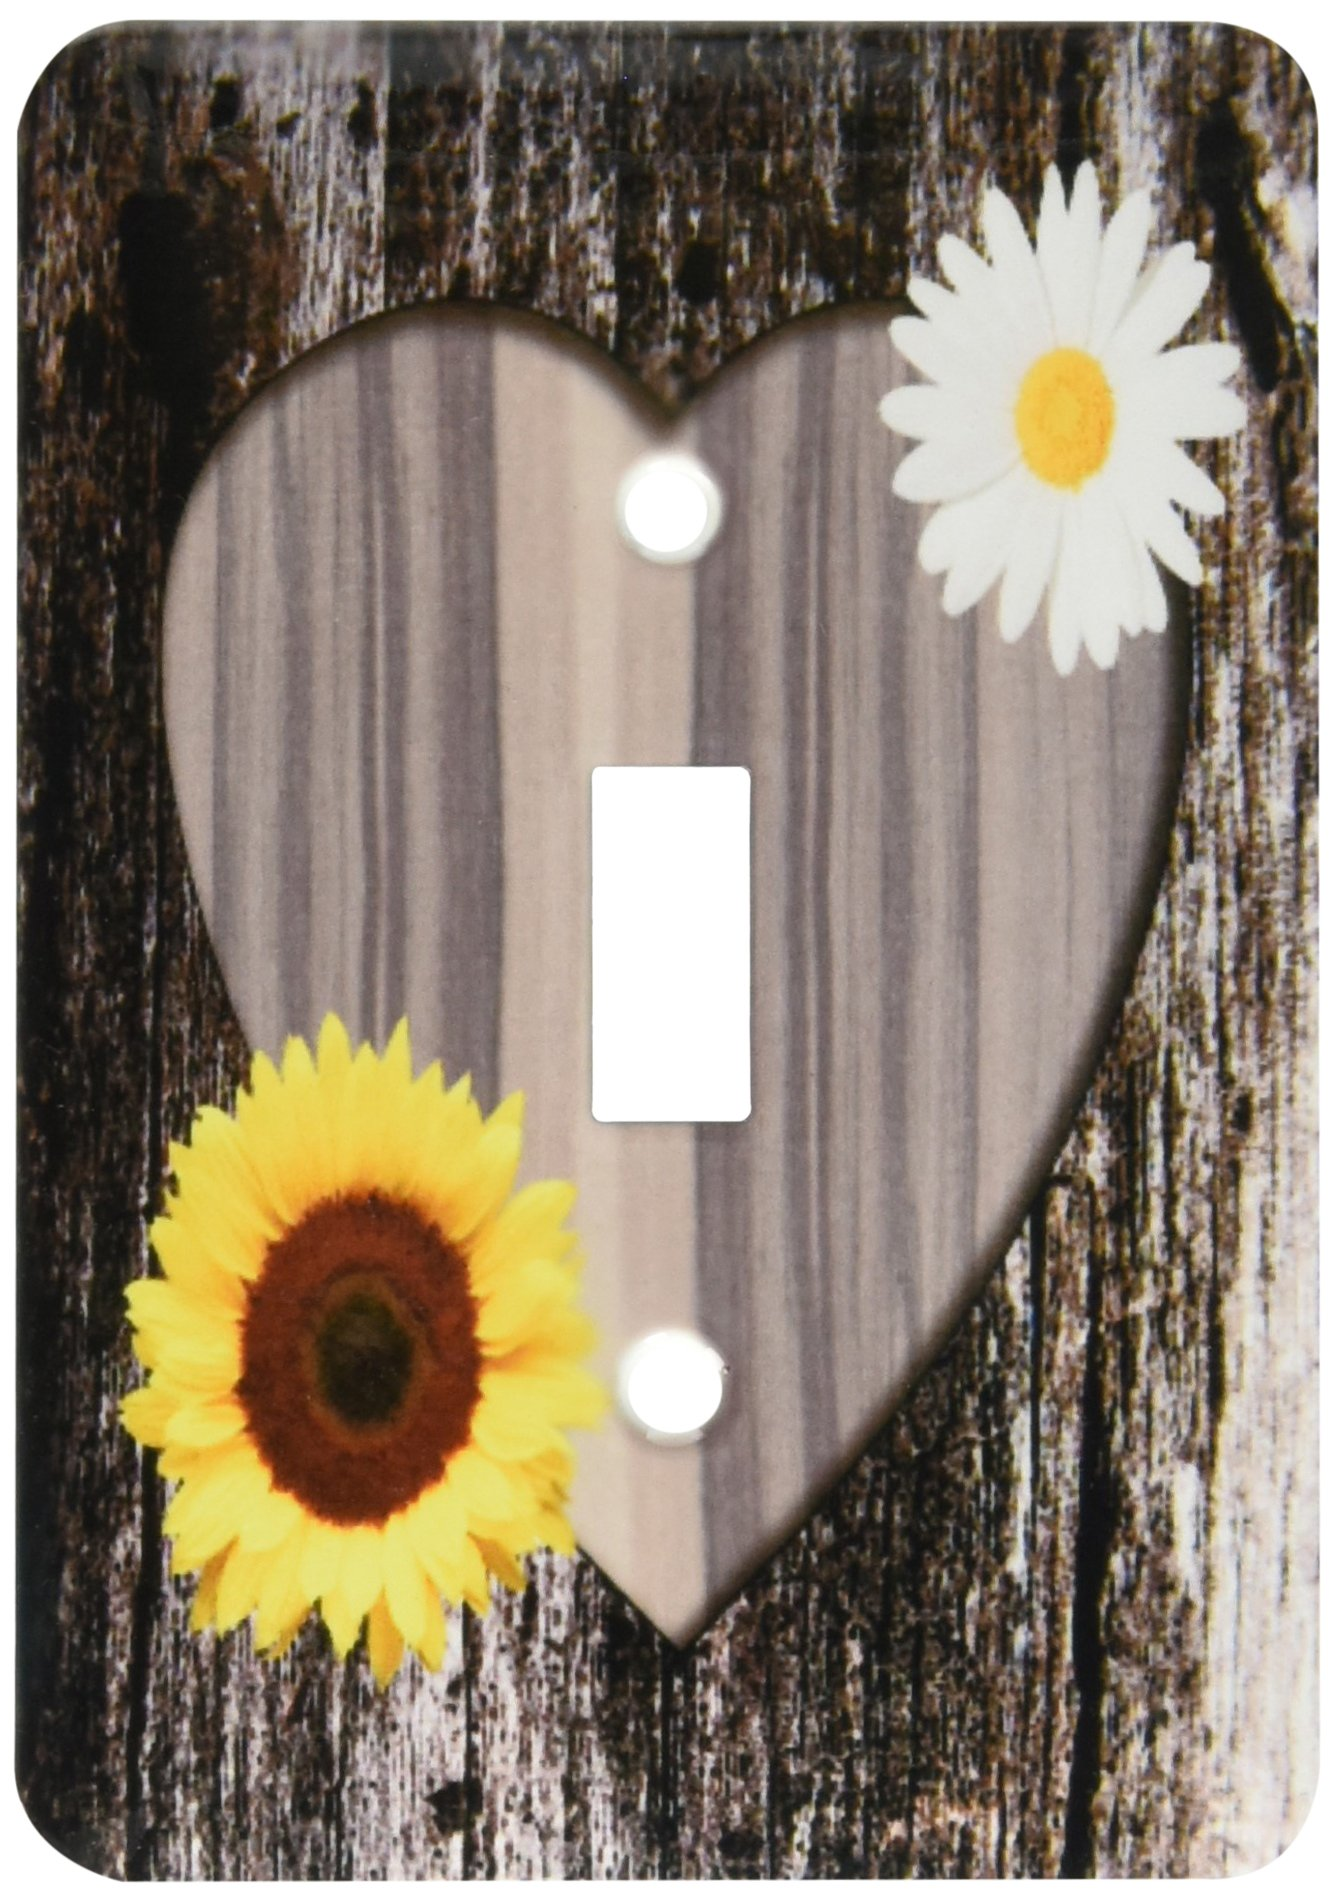 3dRose lsp_181828_1 Wood Image Heart with Sunflower and Daisy Light Switch Cover